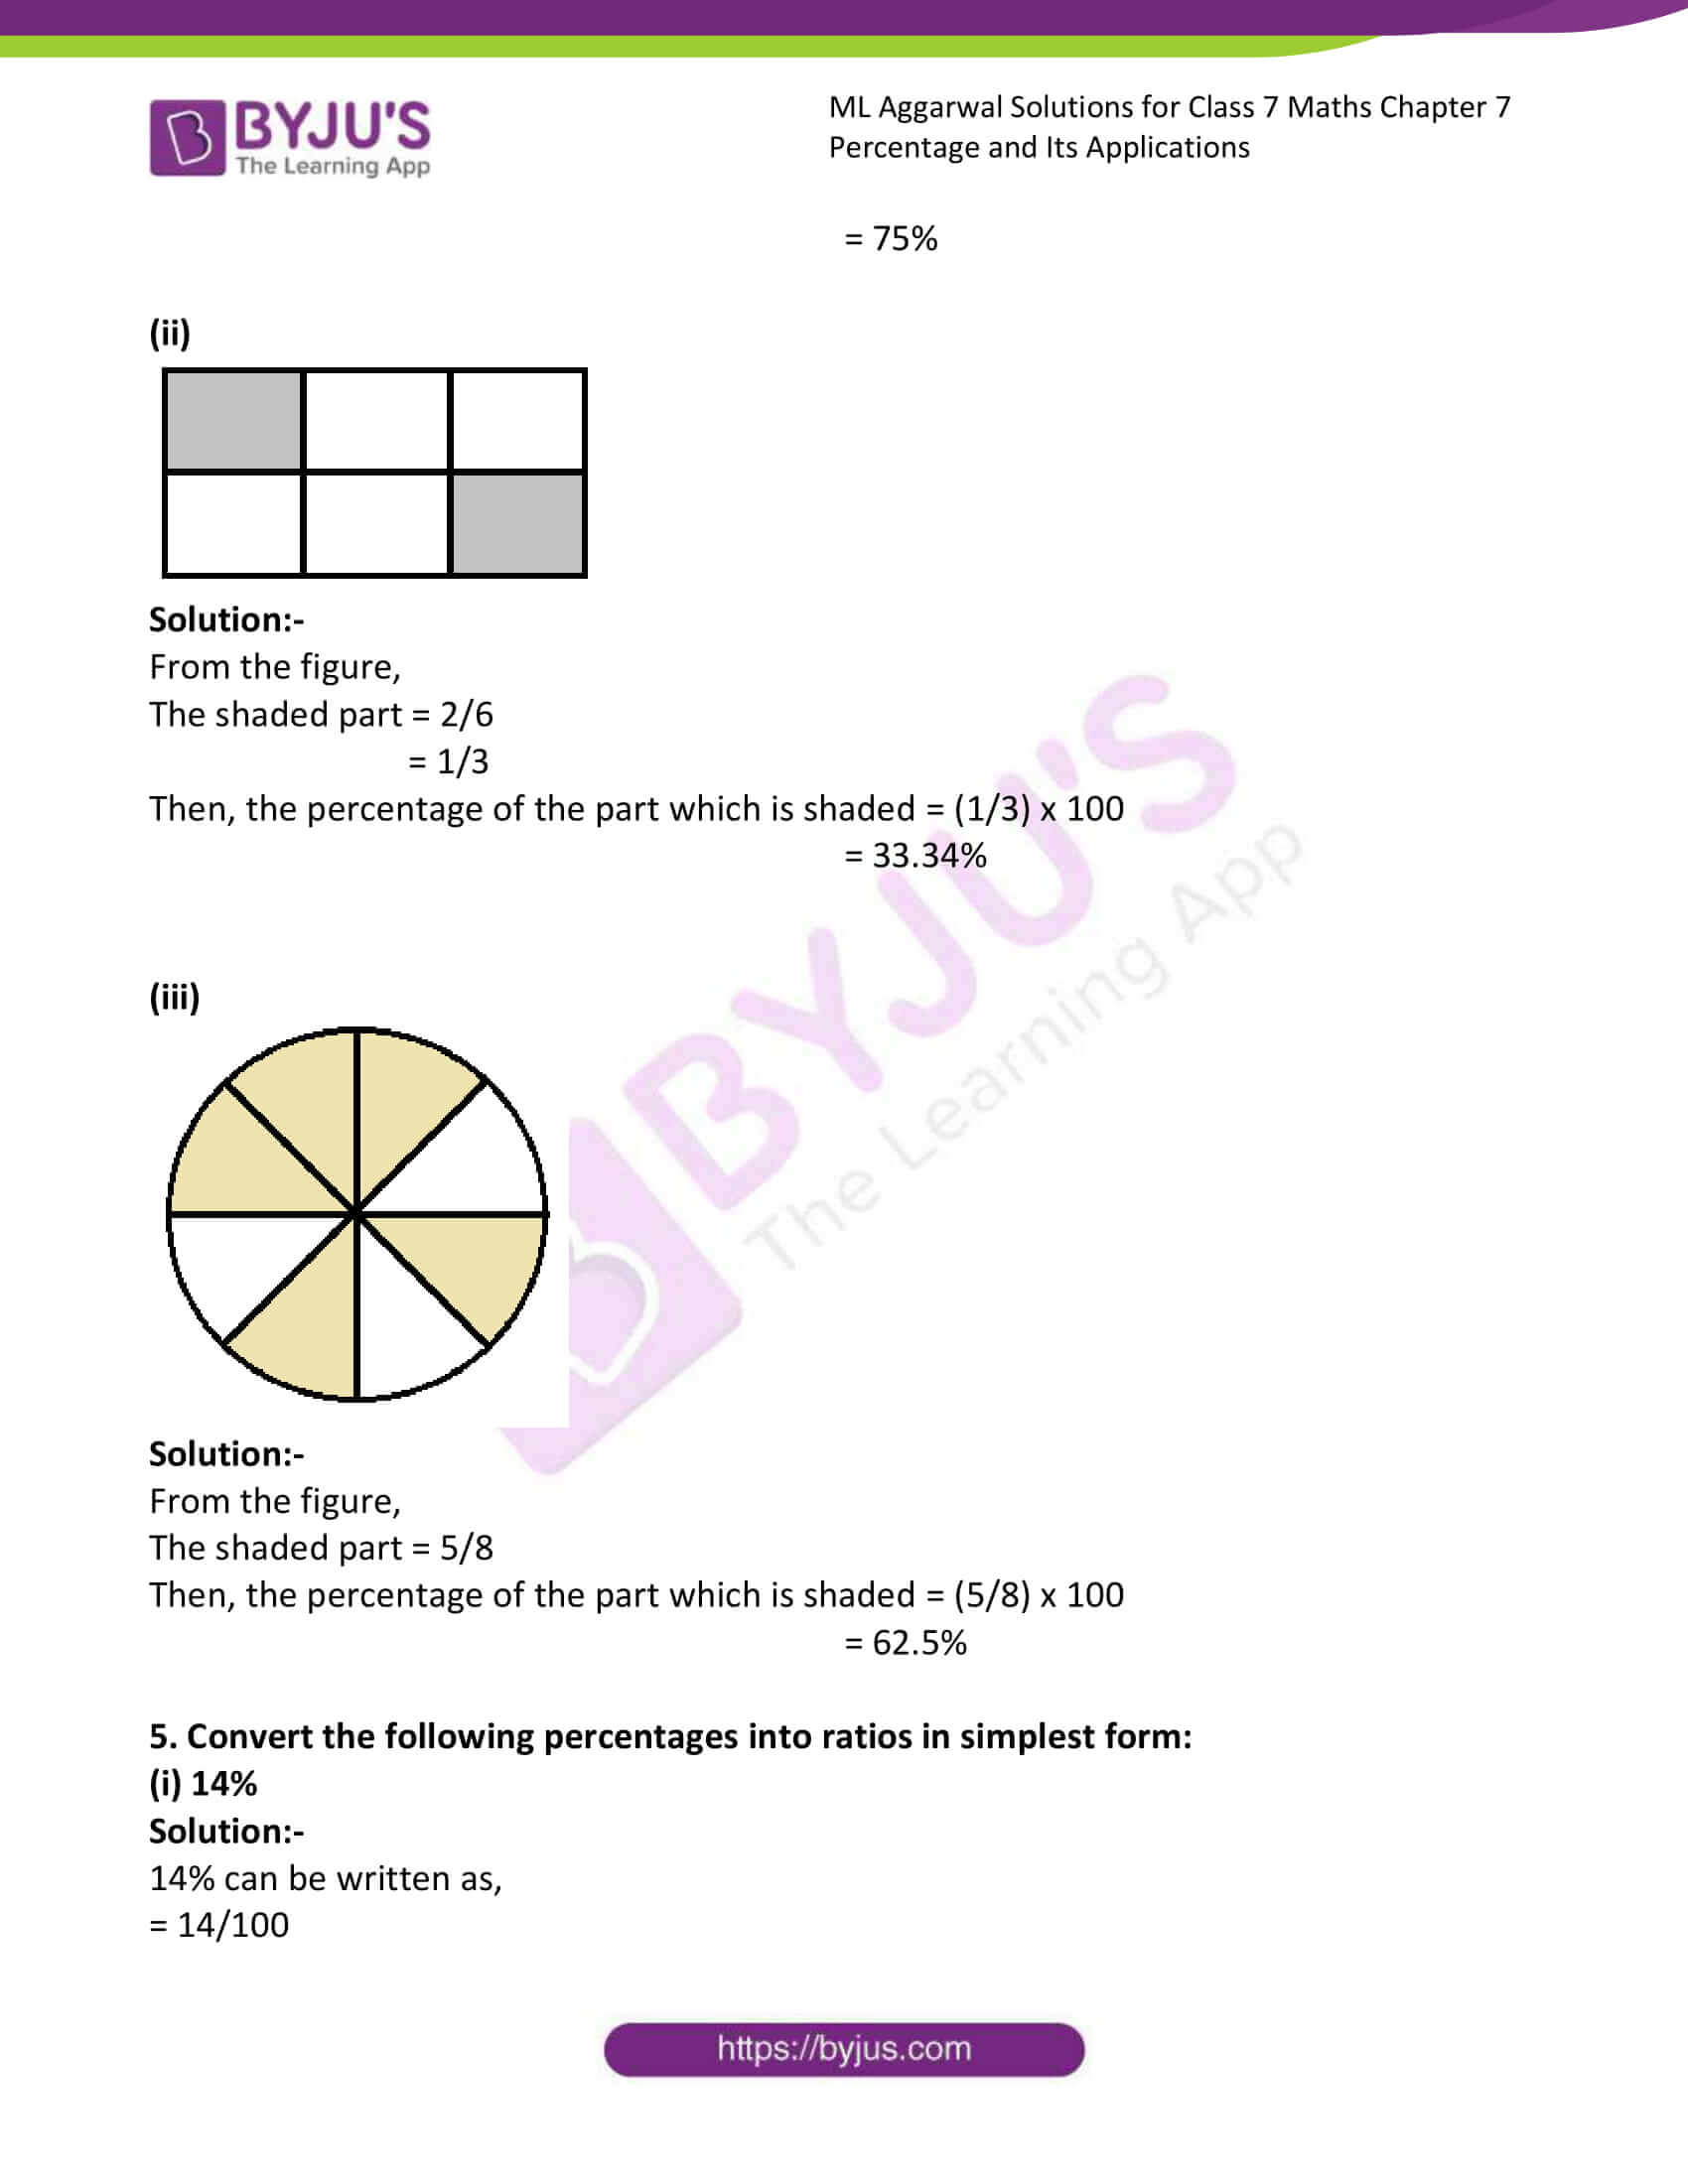 ml aggarwal solutions for class 7 maths chapter 7 5